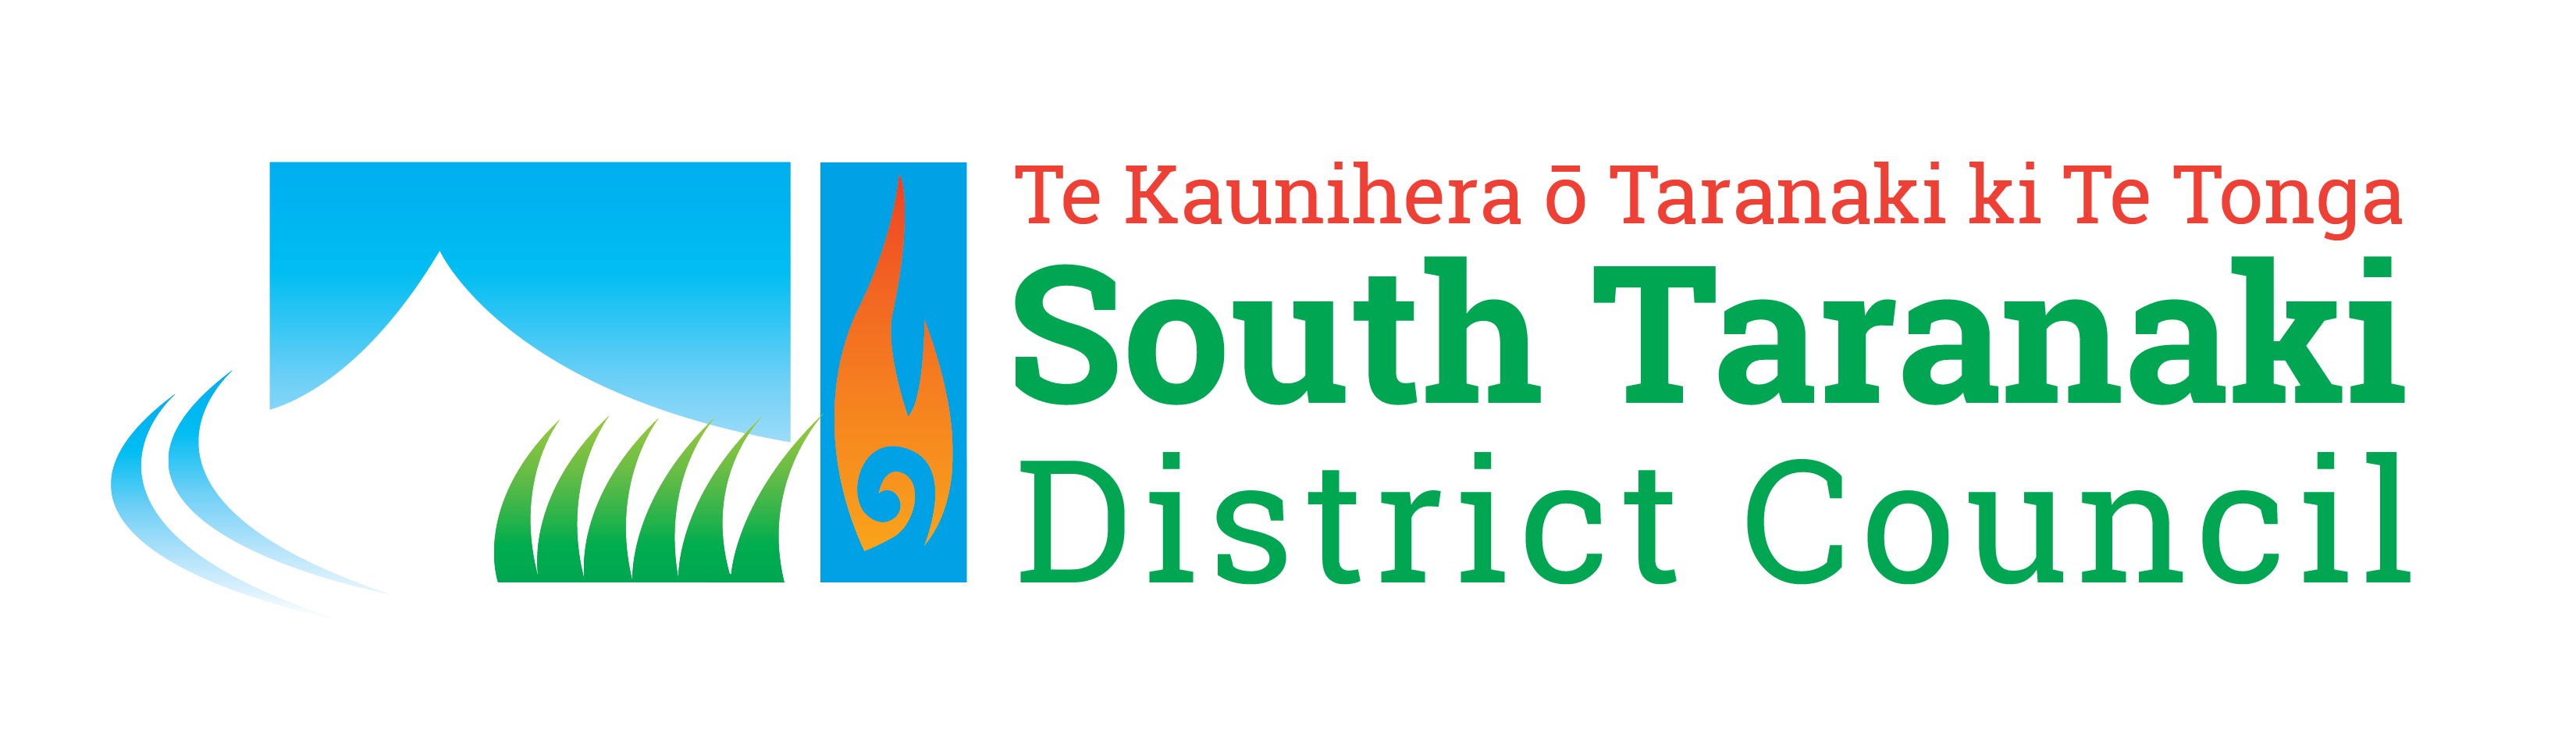 Real Energy South Taranaki Disctrict Logo